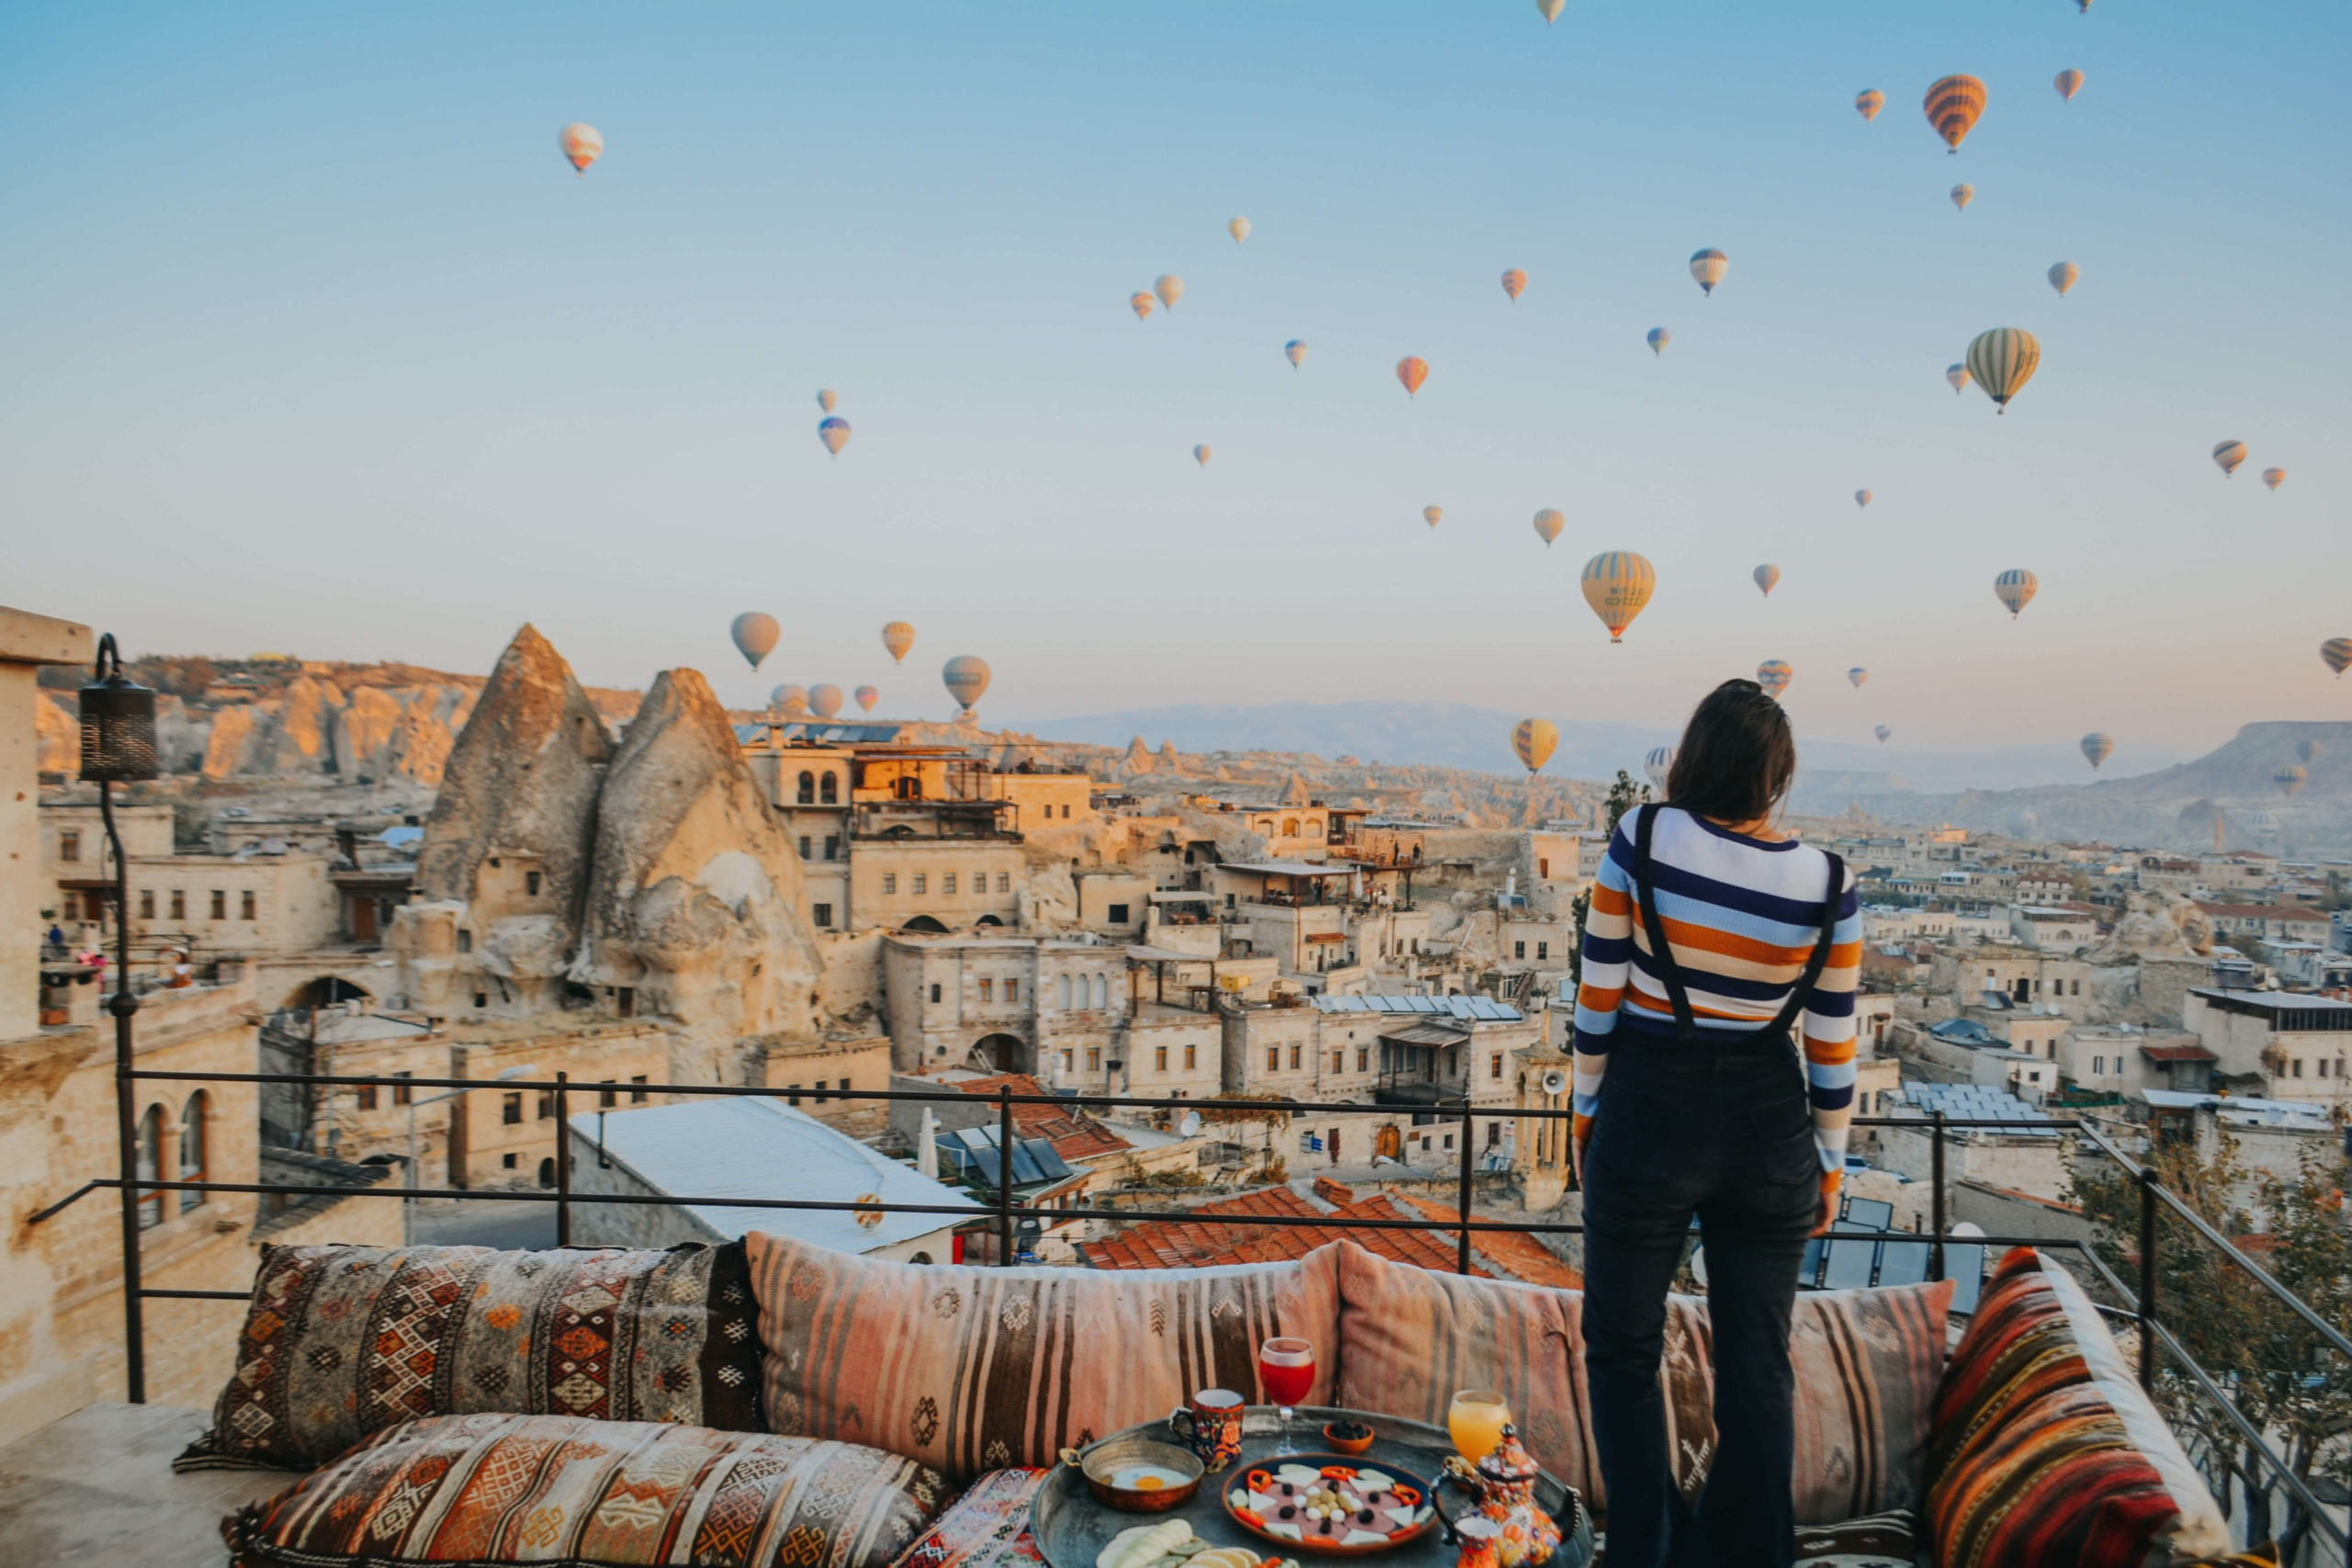 Travel bloggers reveal their most unforgettable travel experiences - Hot air ballooning in Cappadocia, Turkey